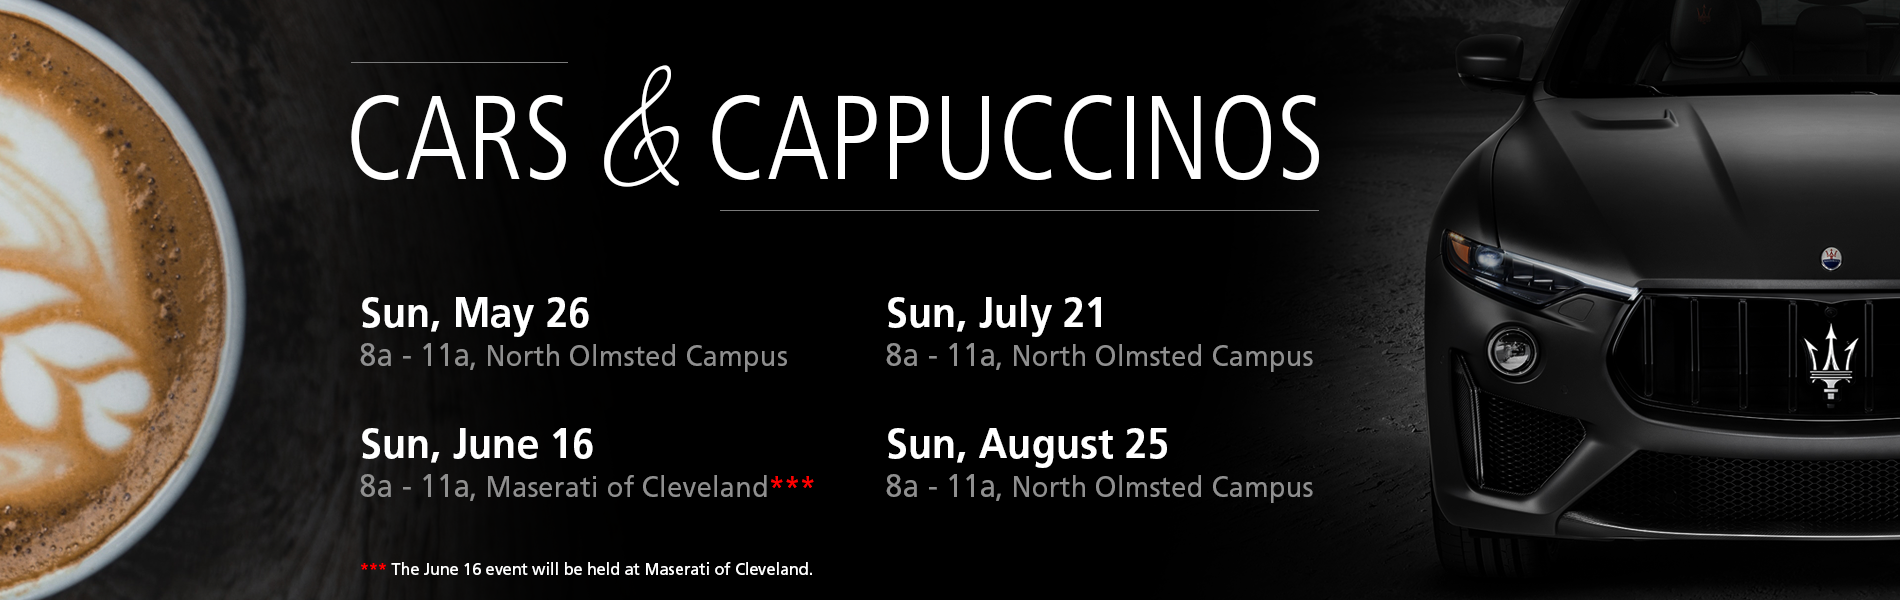 Cars and Cappuccinos Promotional Event